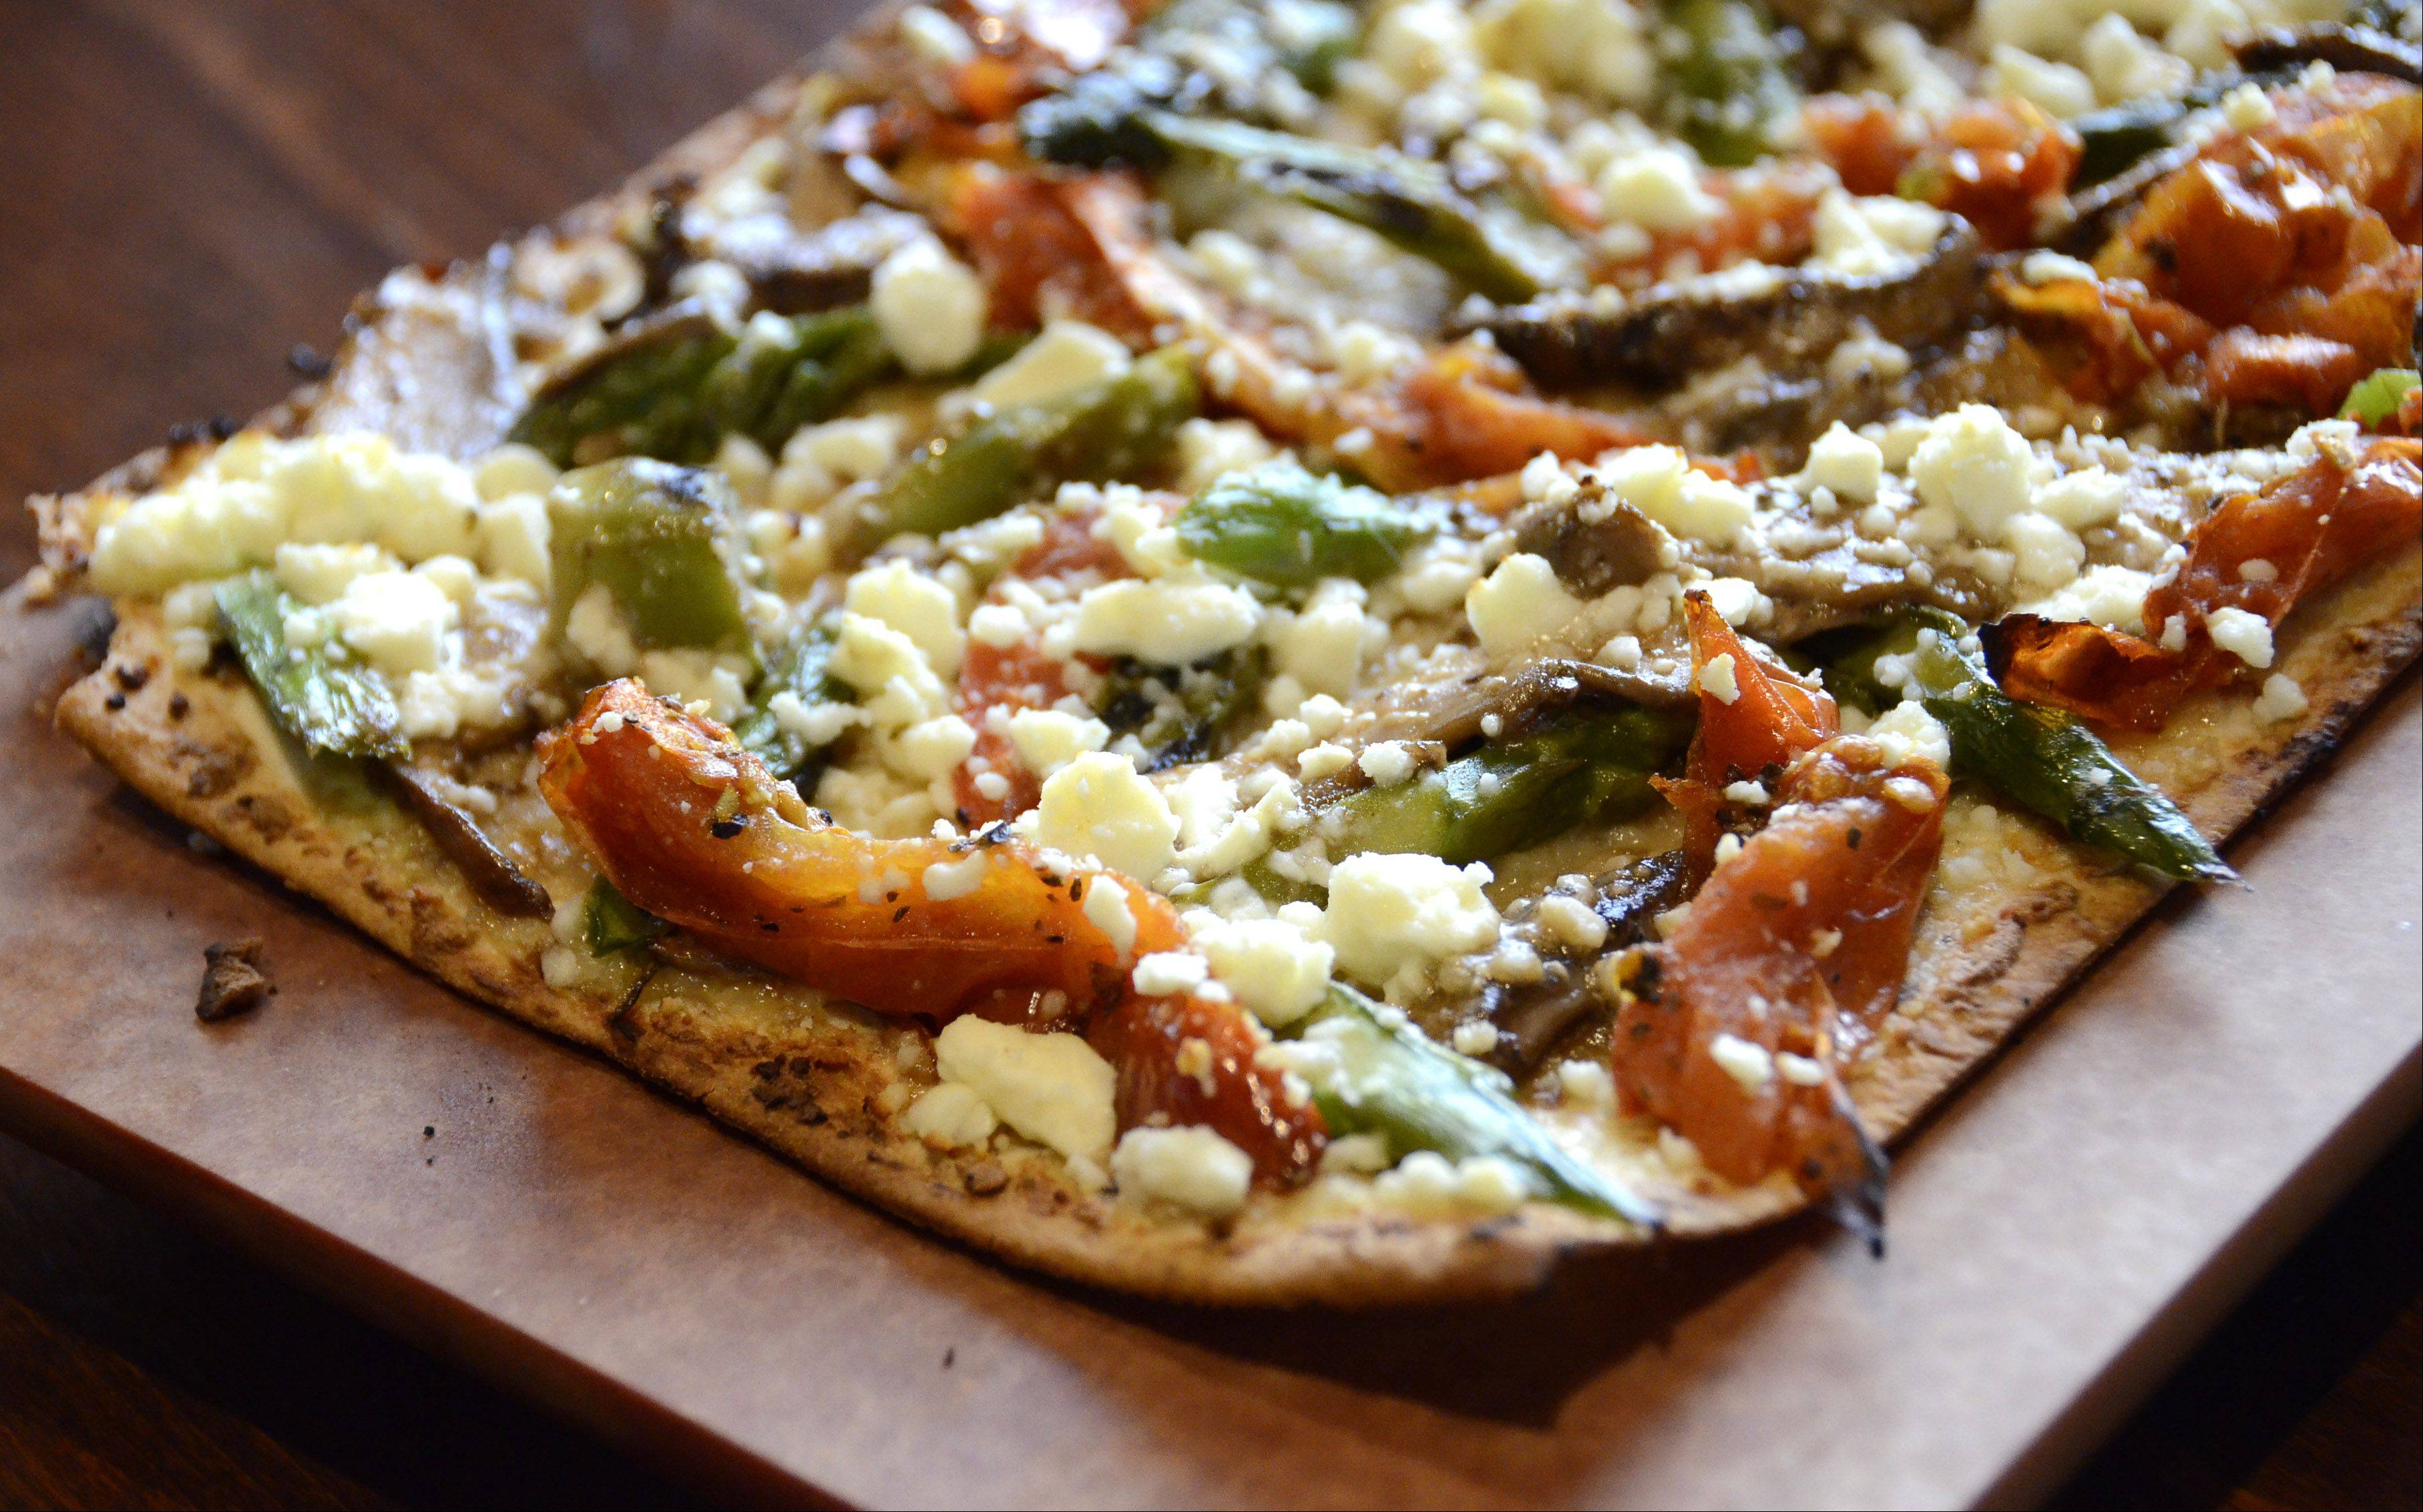 Roasted vegetable flatbread comes with roasted asparagus, tomatoes, garlic, balsamic portobello and feta cheese at BlackFinn American Grill in Mt. Prospect.